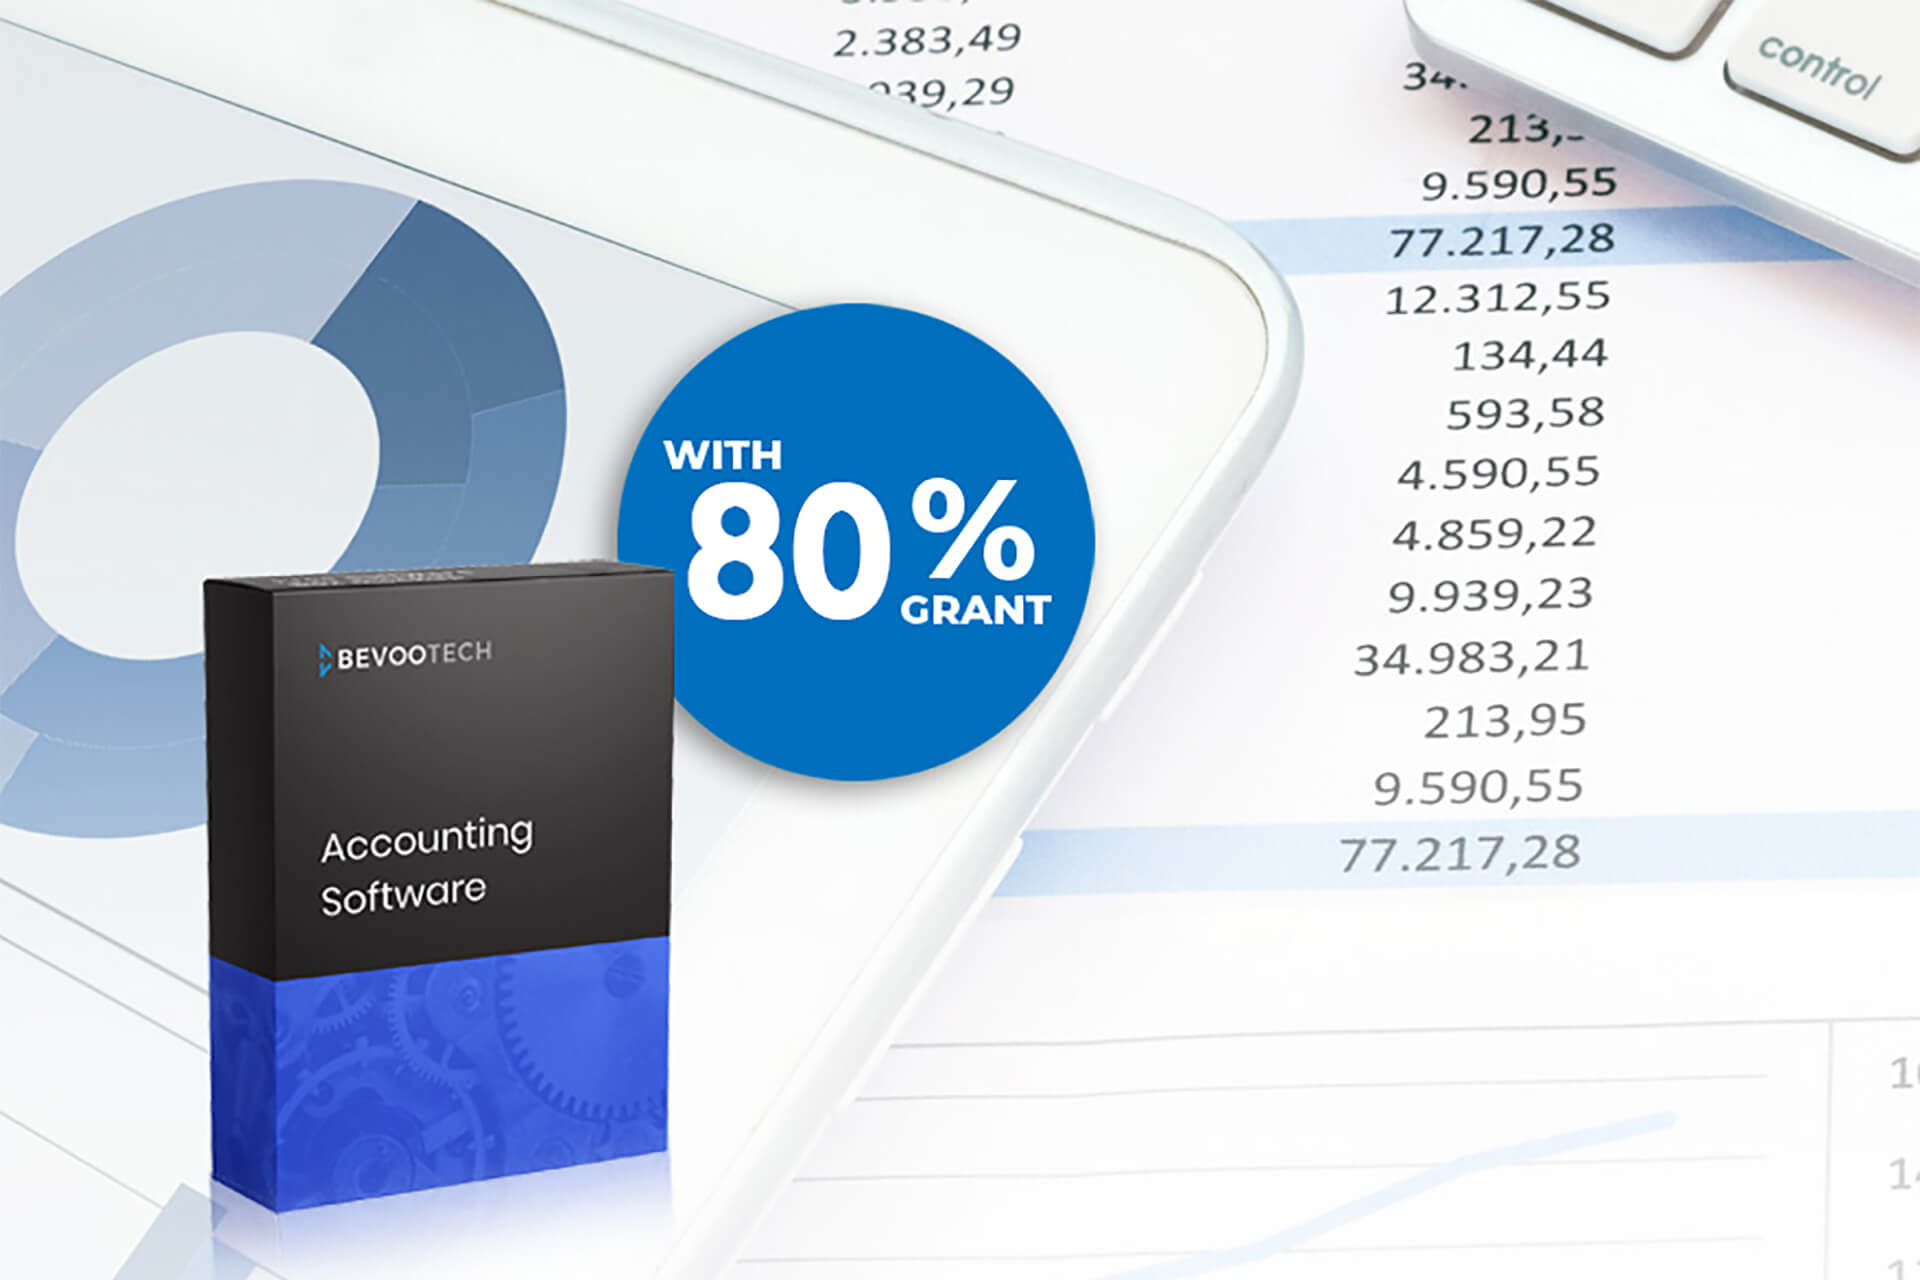 Key Features of Bevootech PSG Grant Accounting Software